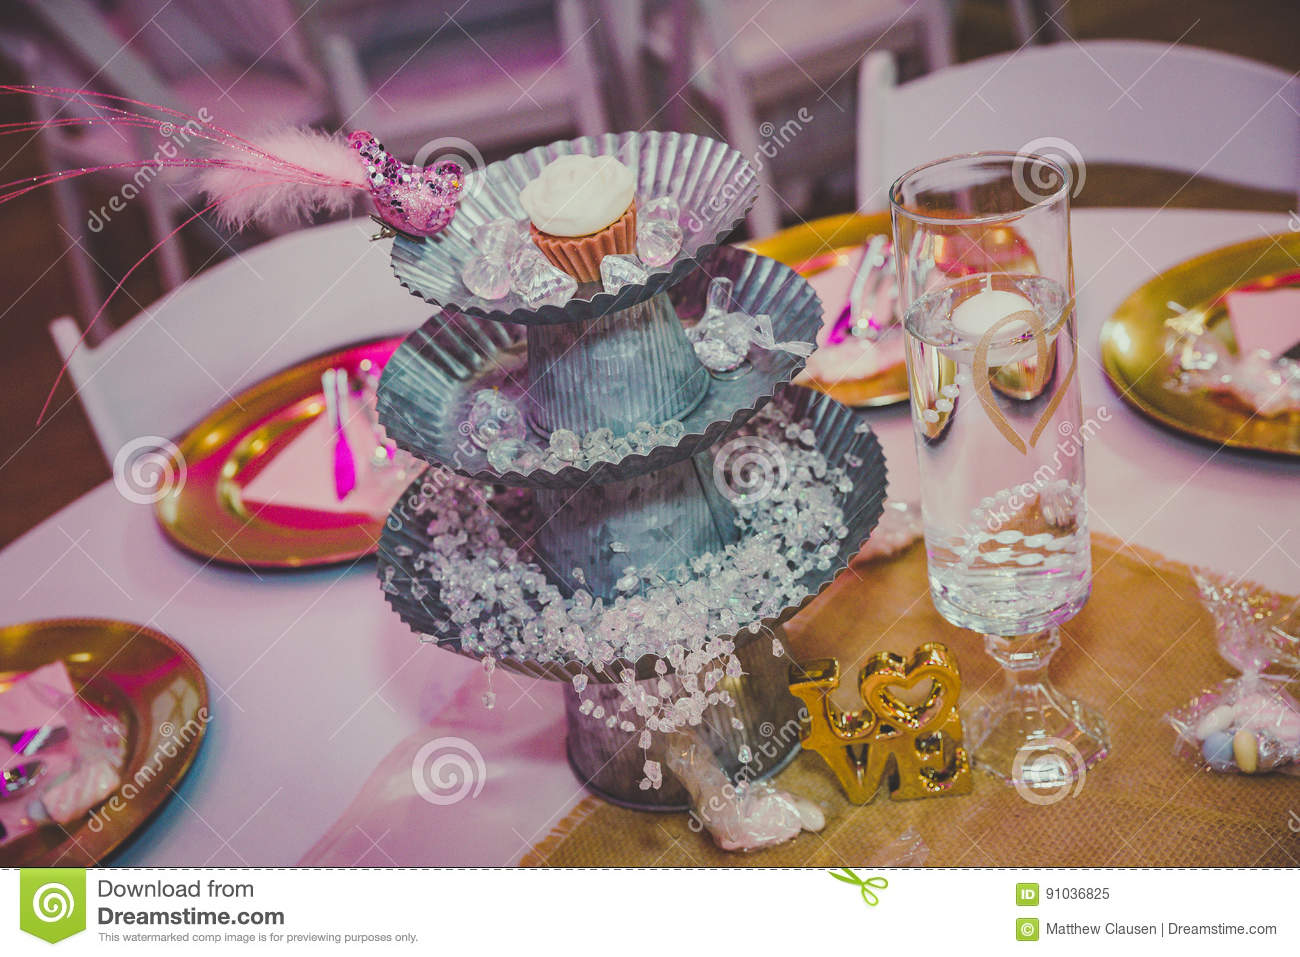 Wedding Table Decorations Stock Image Image Of Arrangement 91036825